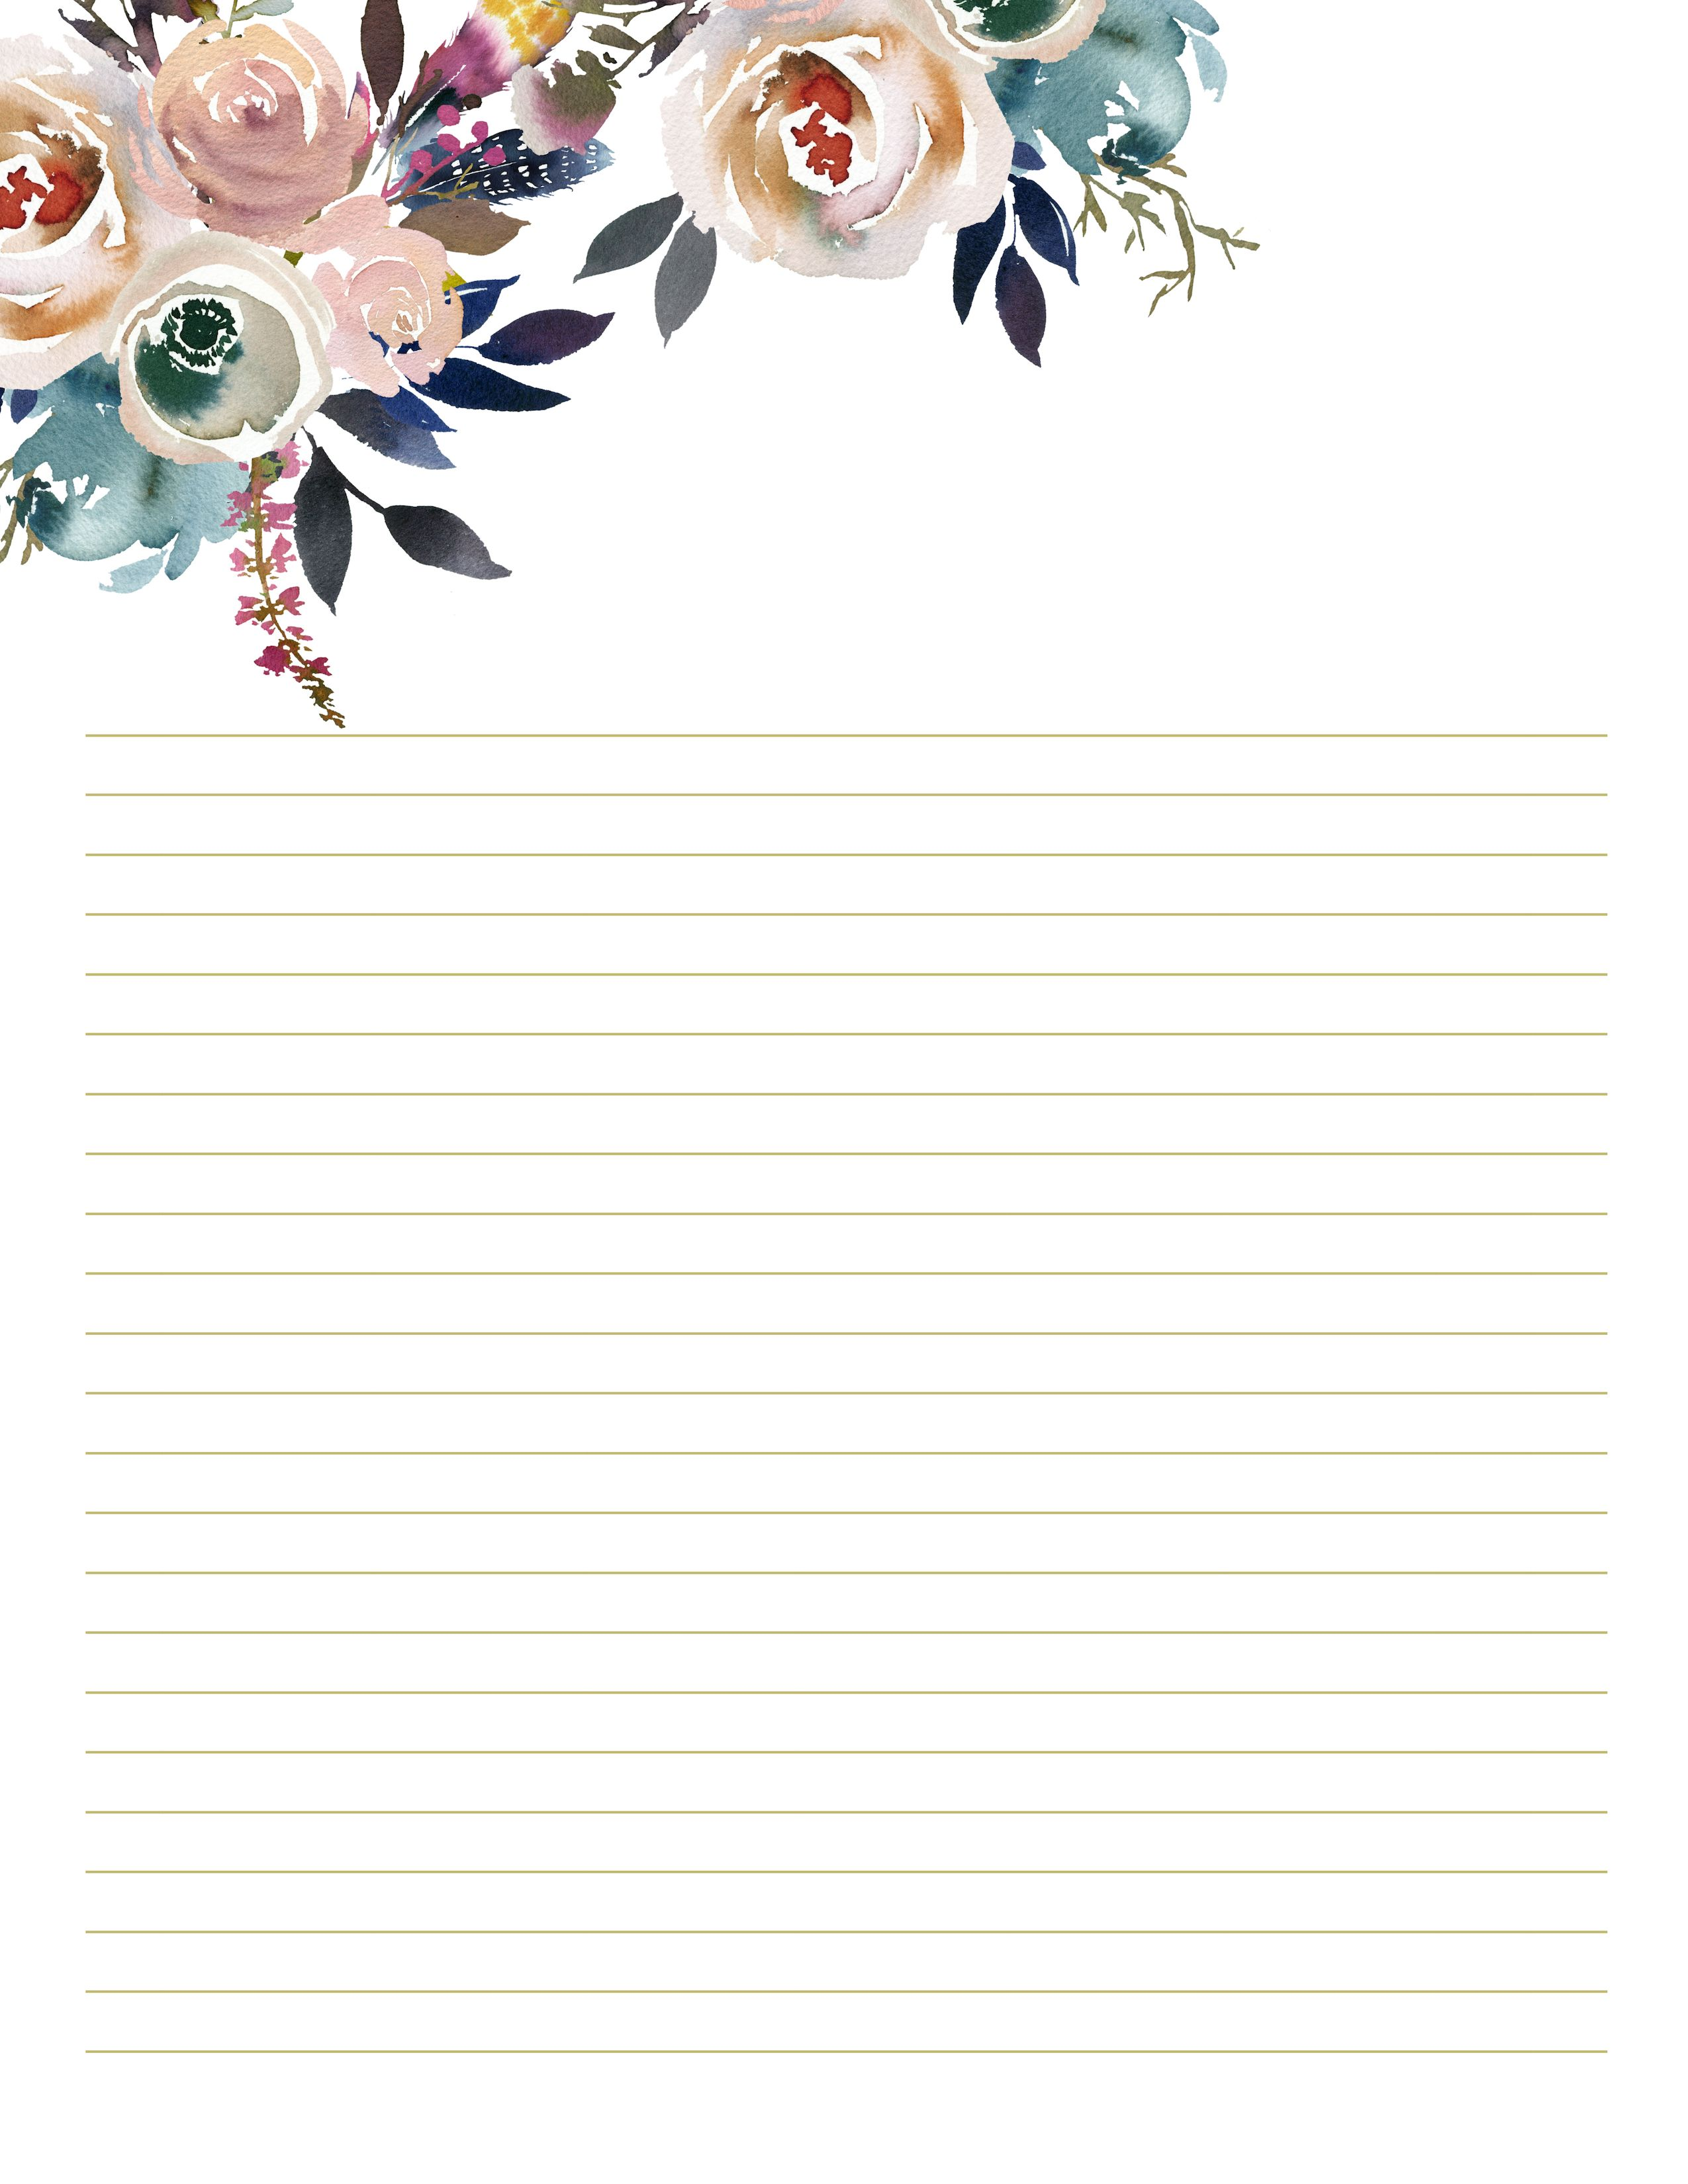 Floral Stationary For Wedding Writing Paper Printables Etsy Writing Paper Printable Stationery Writing Paper Printable Free Printable Stationery